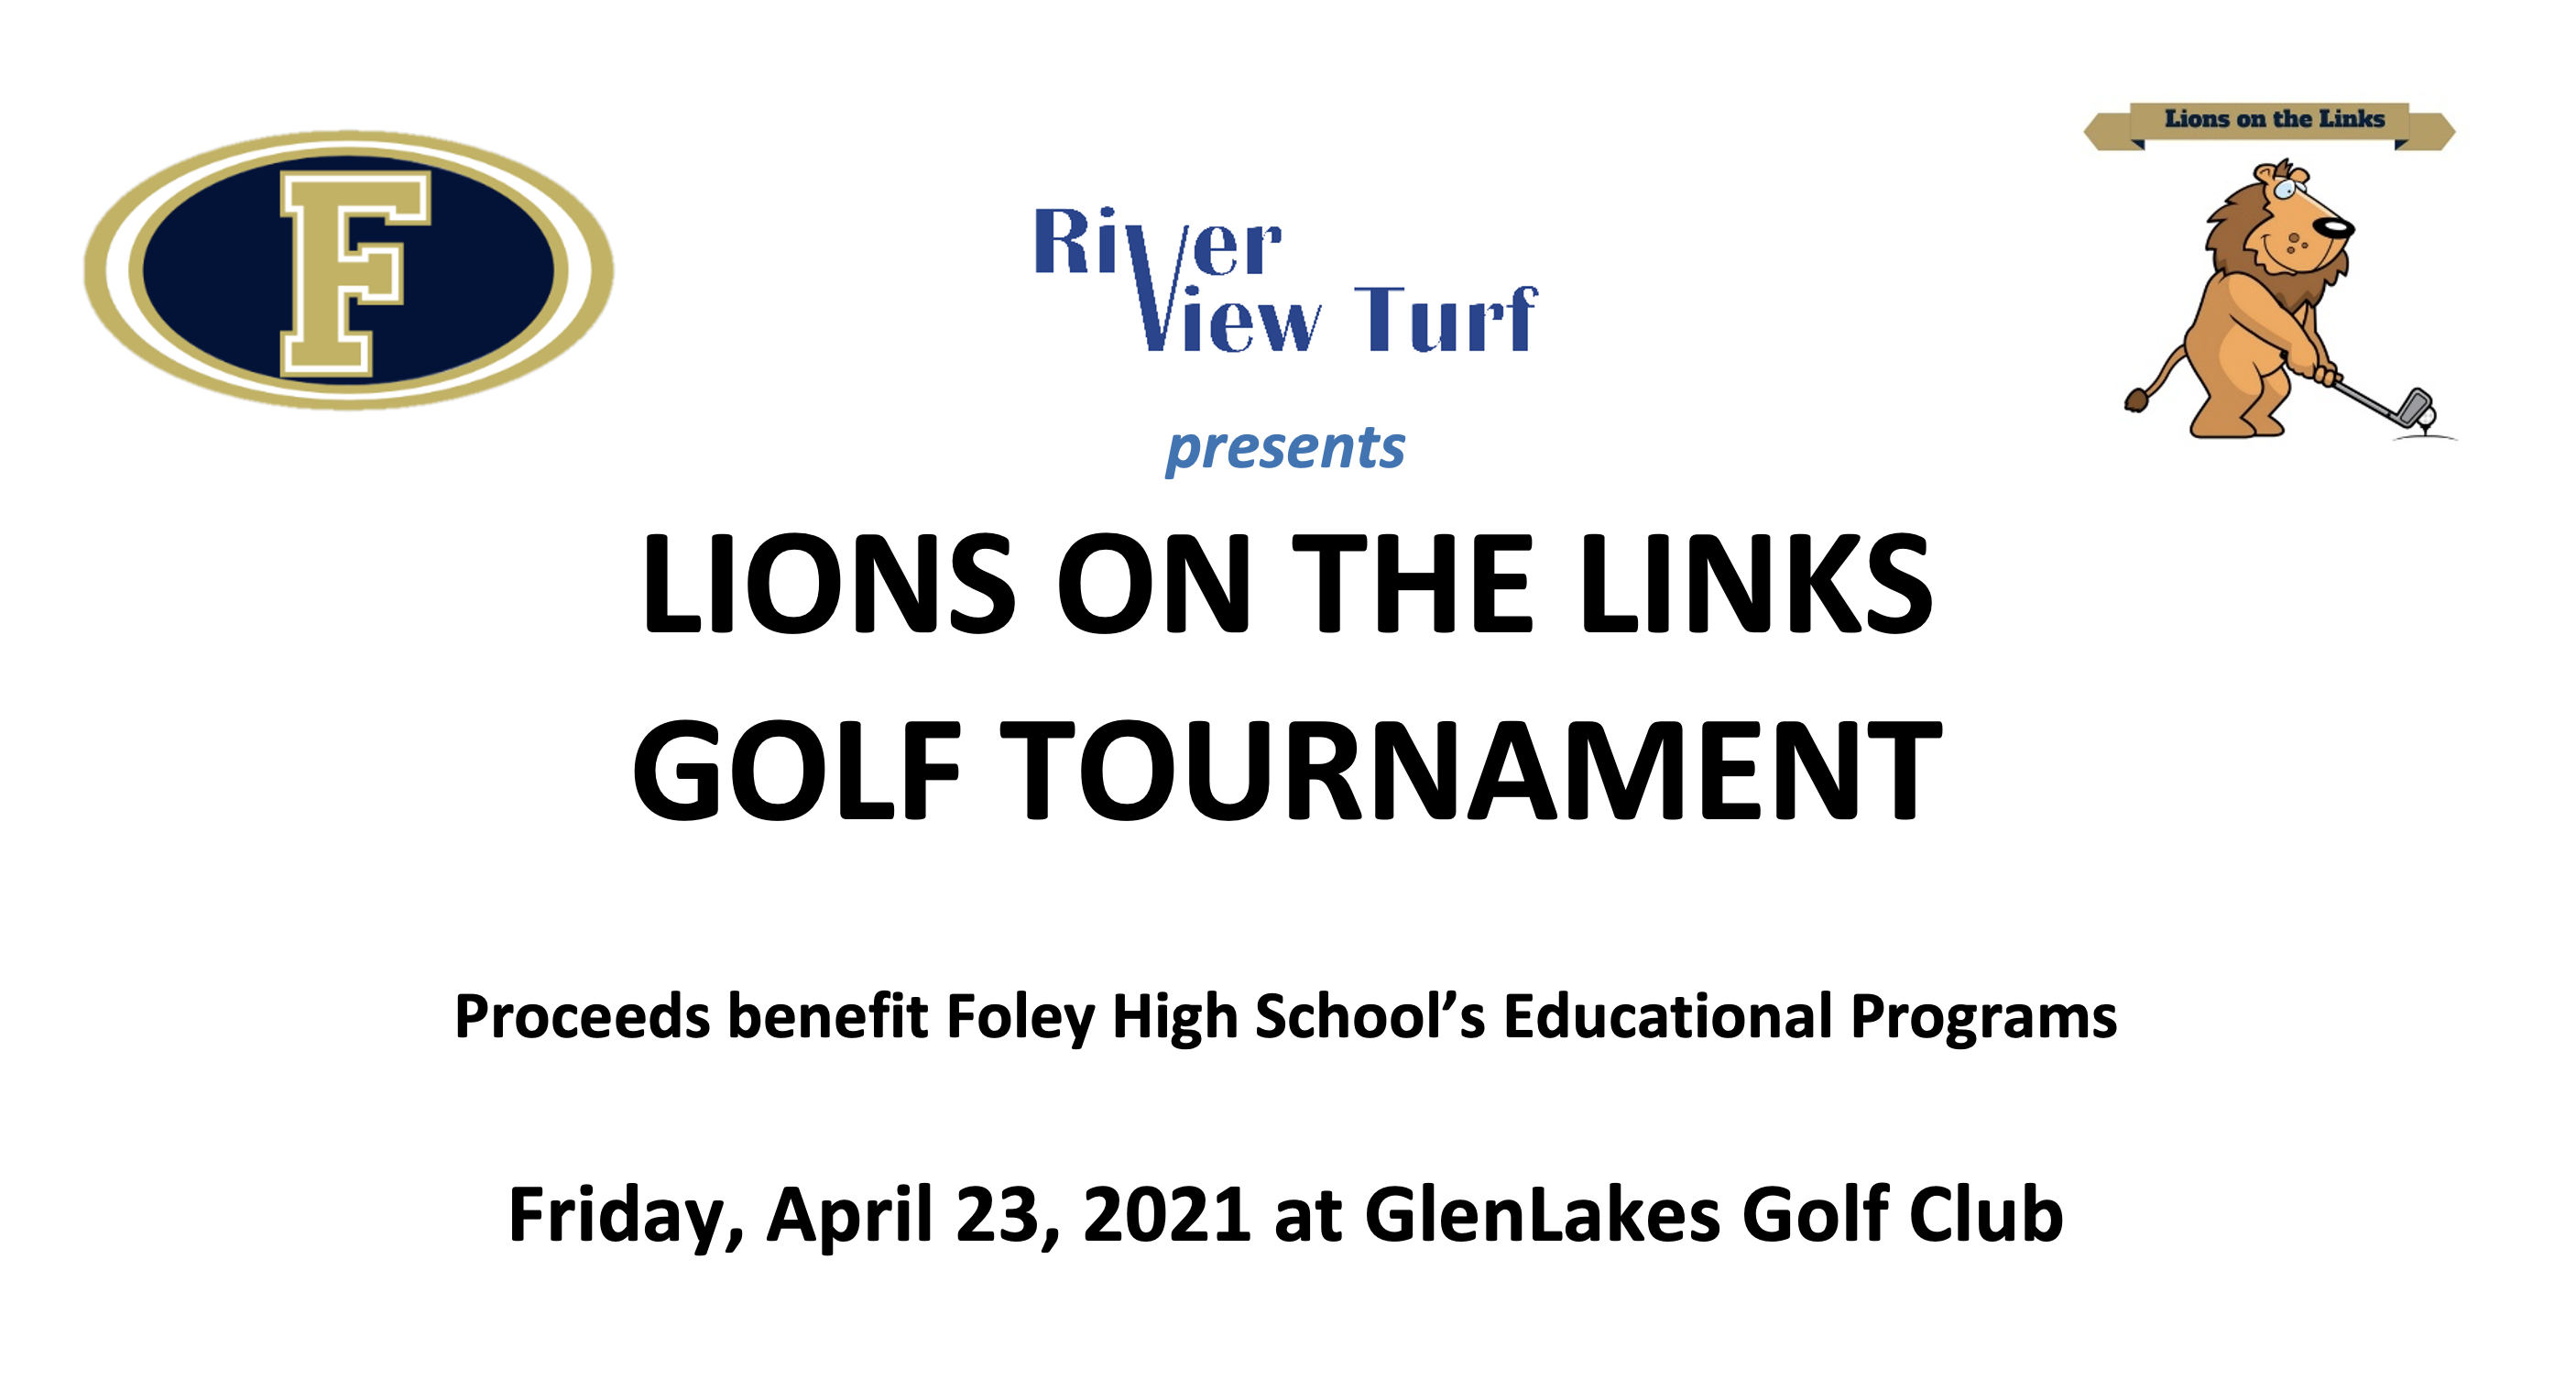 Lions on the Links Golf Tournament